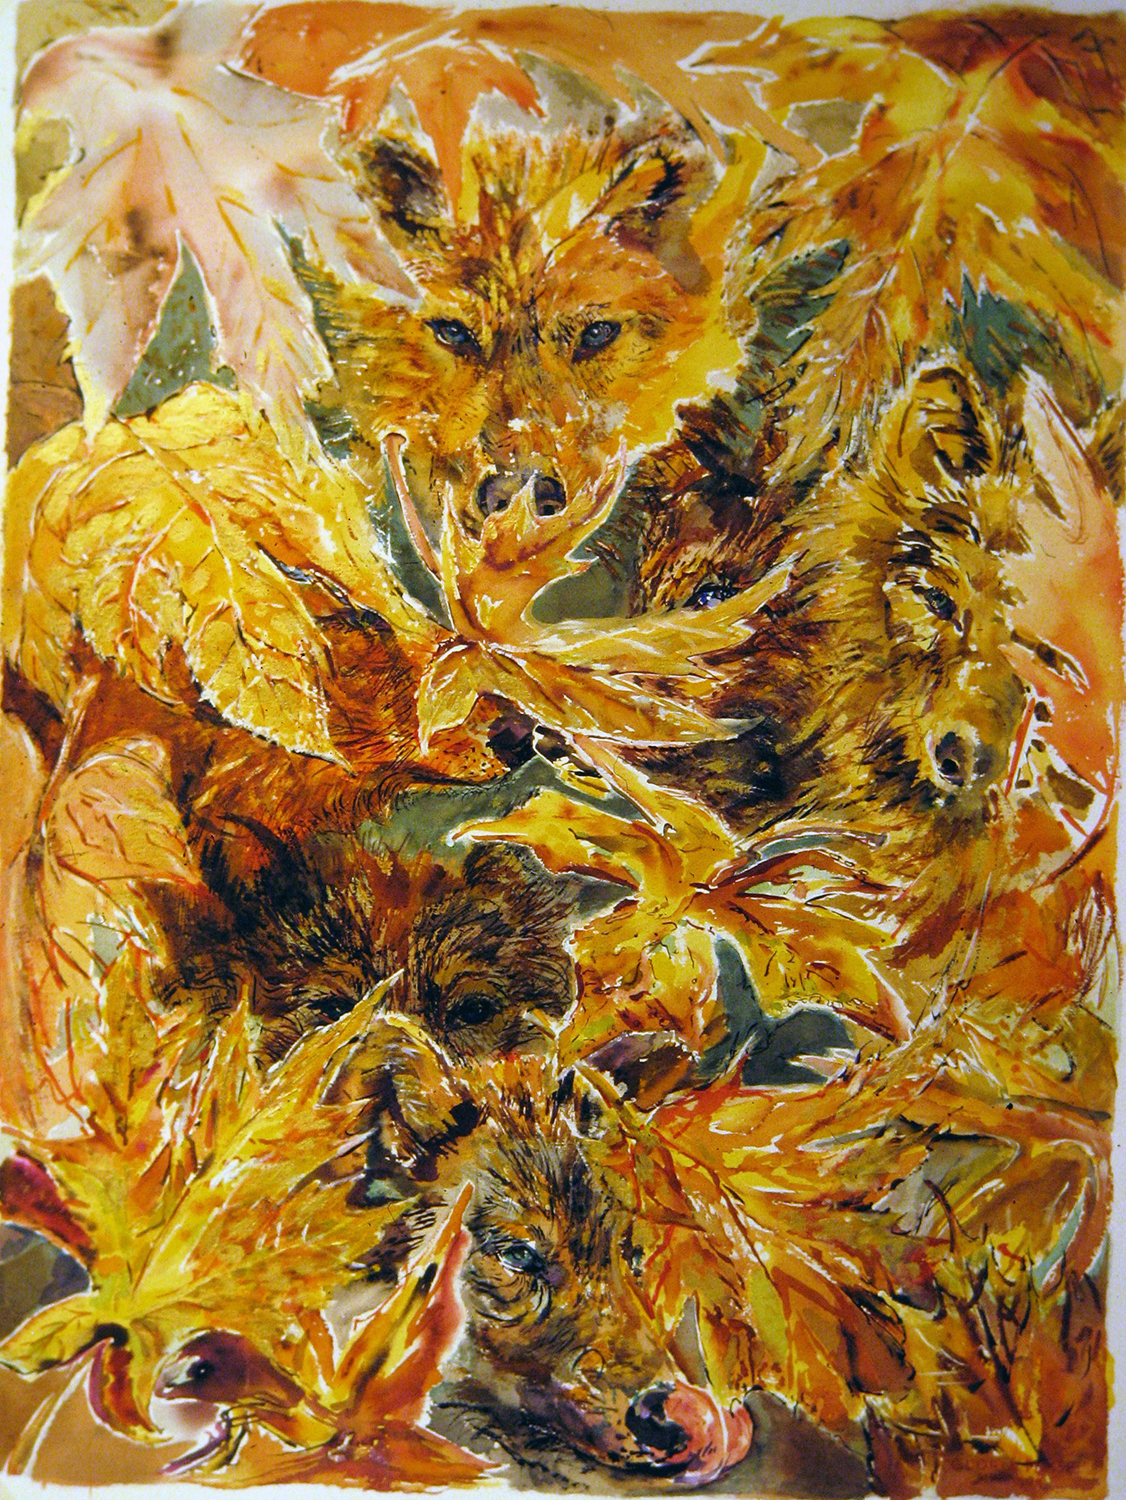 wolves in autumn leaves 1994 28x38